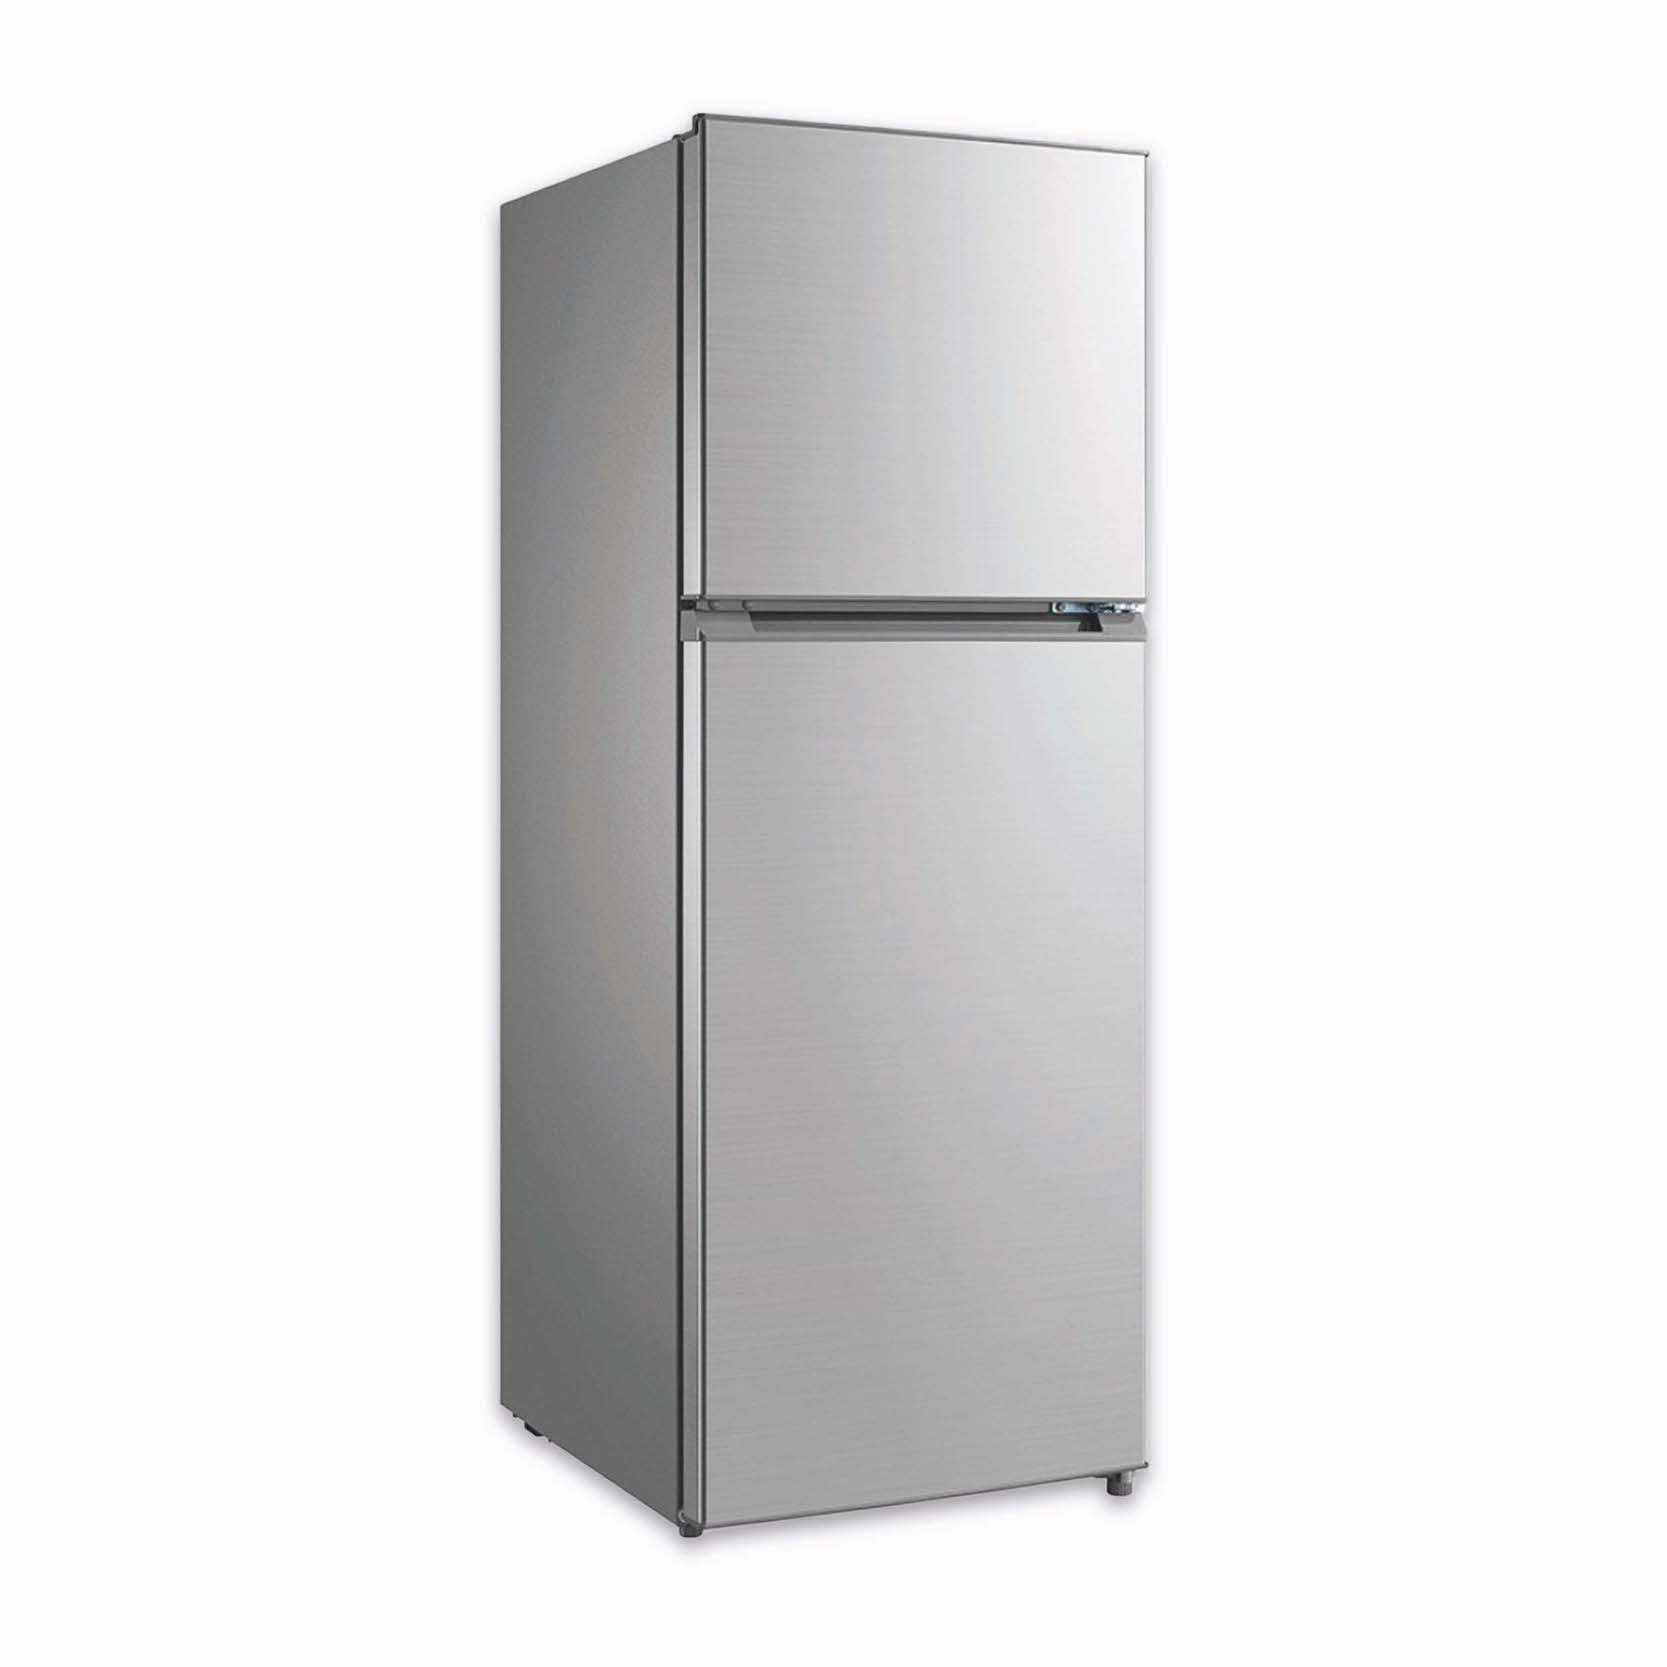 Midea 239L Top Mount Fridge Freezer